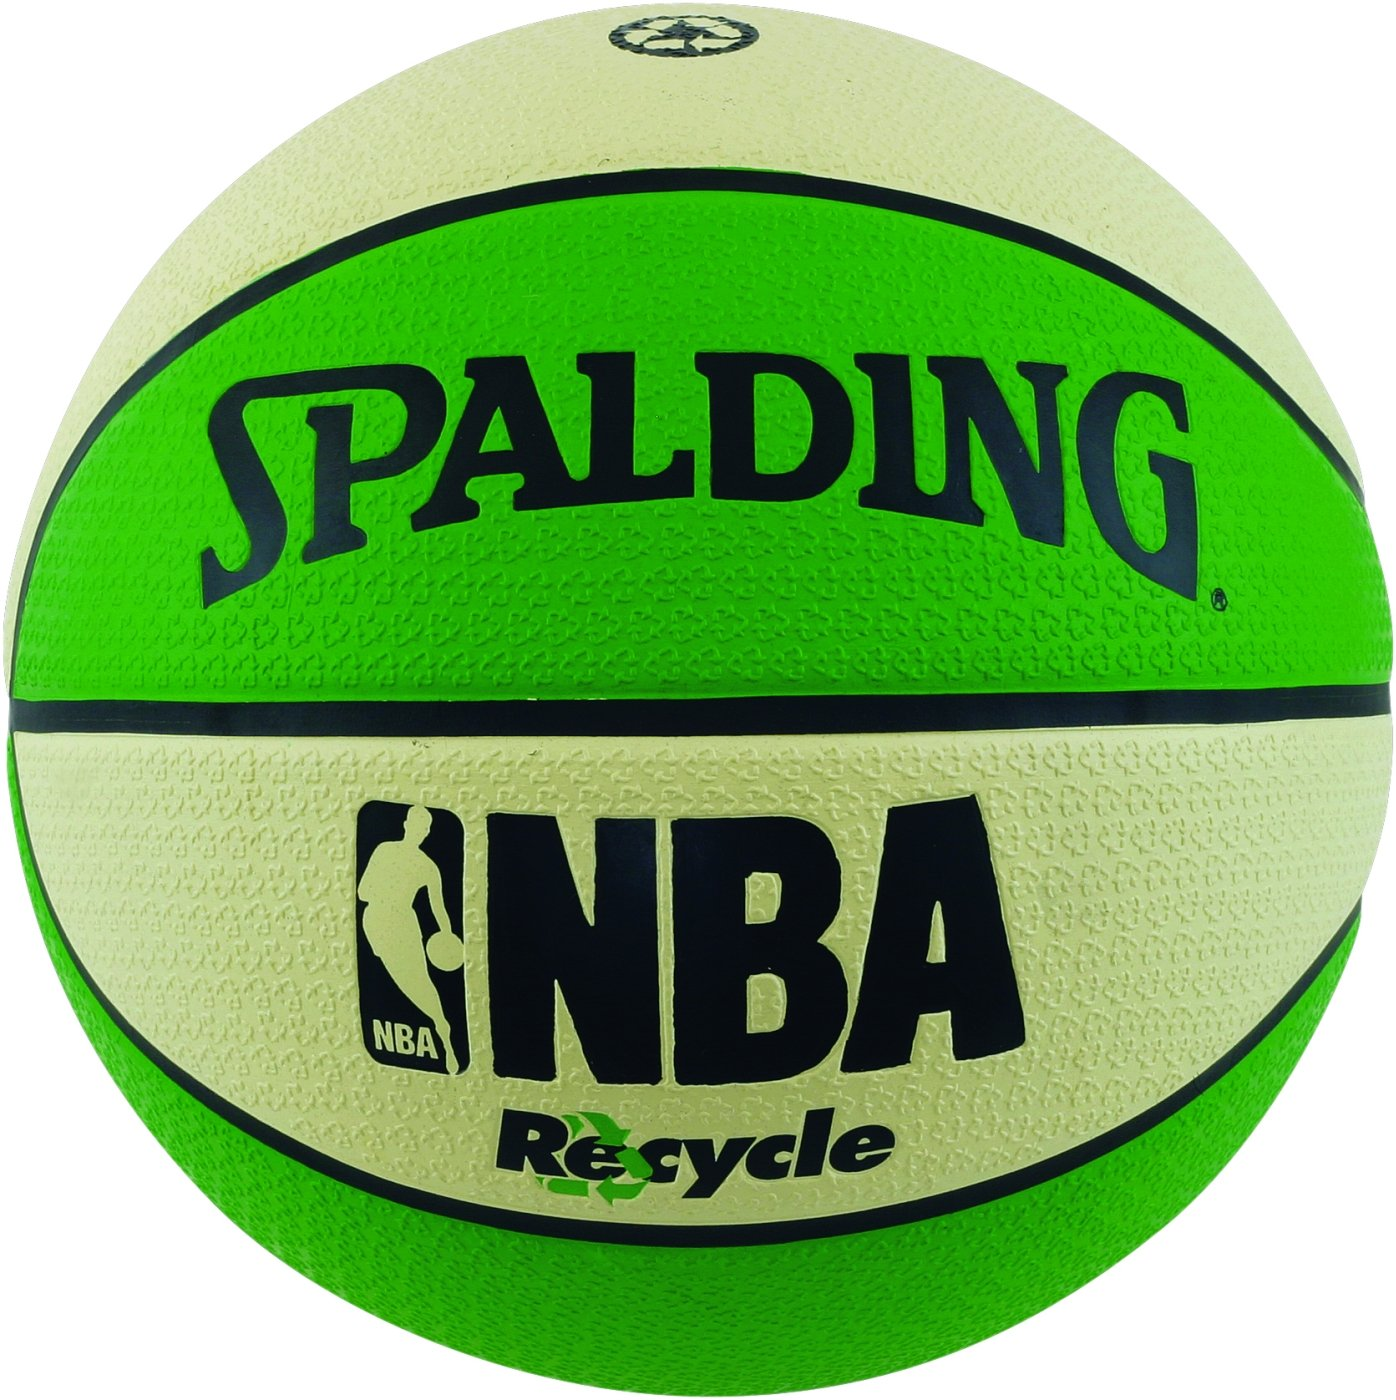 Spalding NBA RECYCLE OUTDOOR SZ.7 (73-356Z) 7 3001529013217